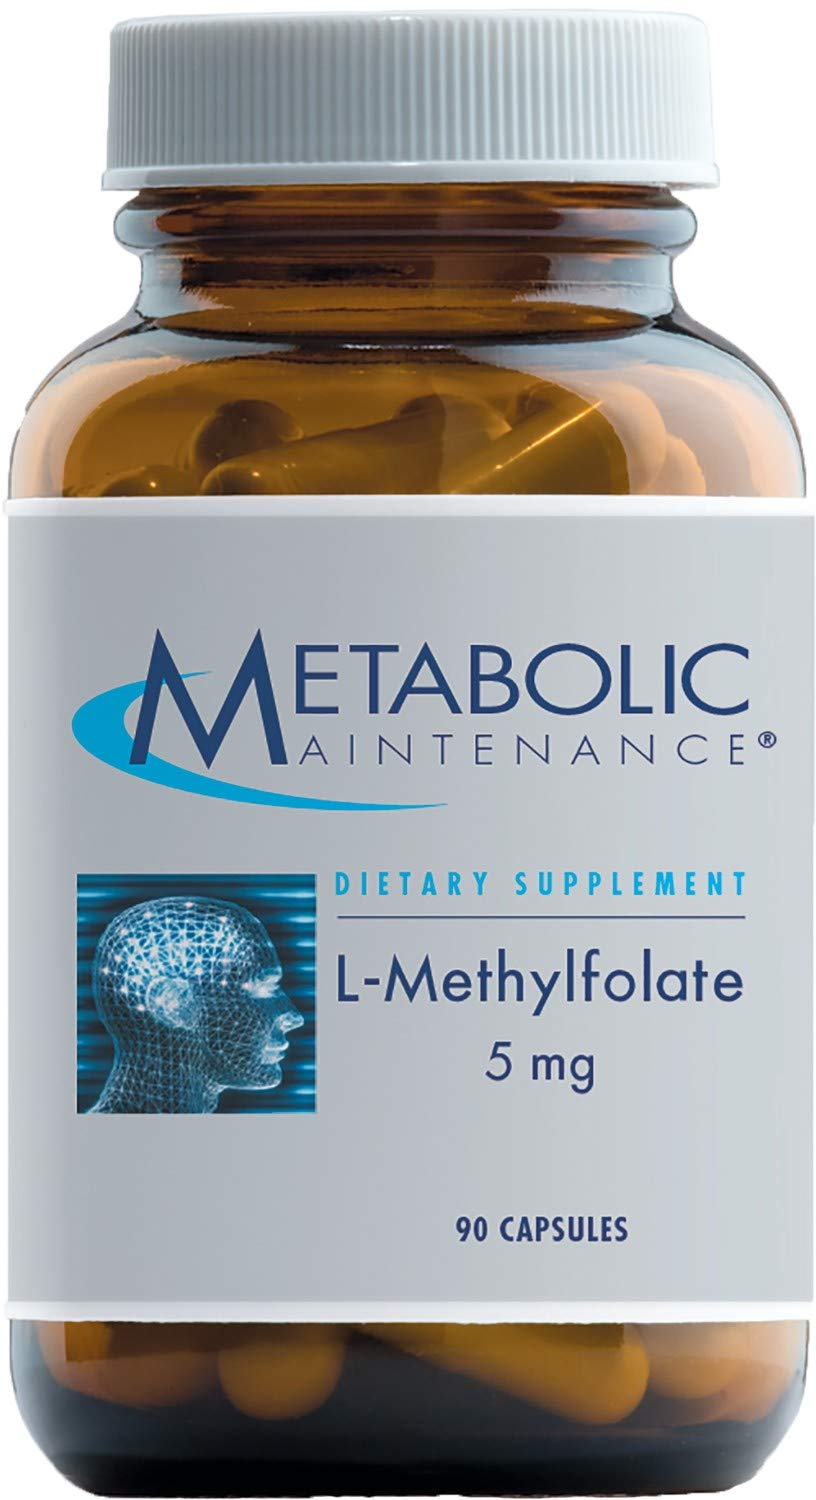 Metabolic Maintenance L-Methylfolate 5 Milligrams - Active Folate (L-5-MTHF) for Mood, Nerve + Cardiovascular Support (90 Capsules) by Metabolic Maintenance